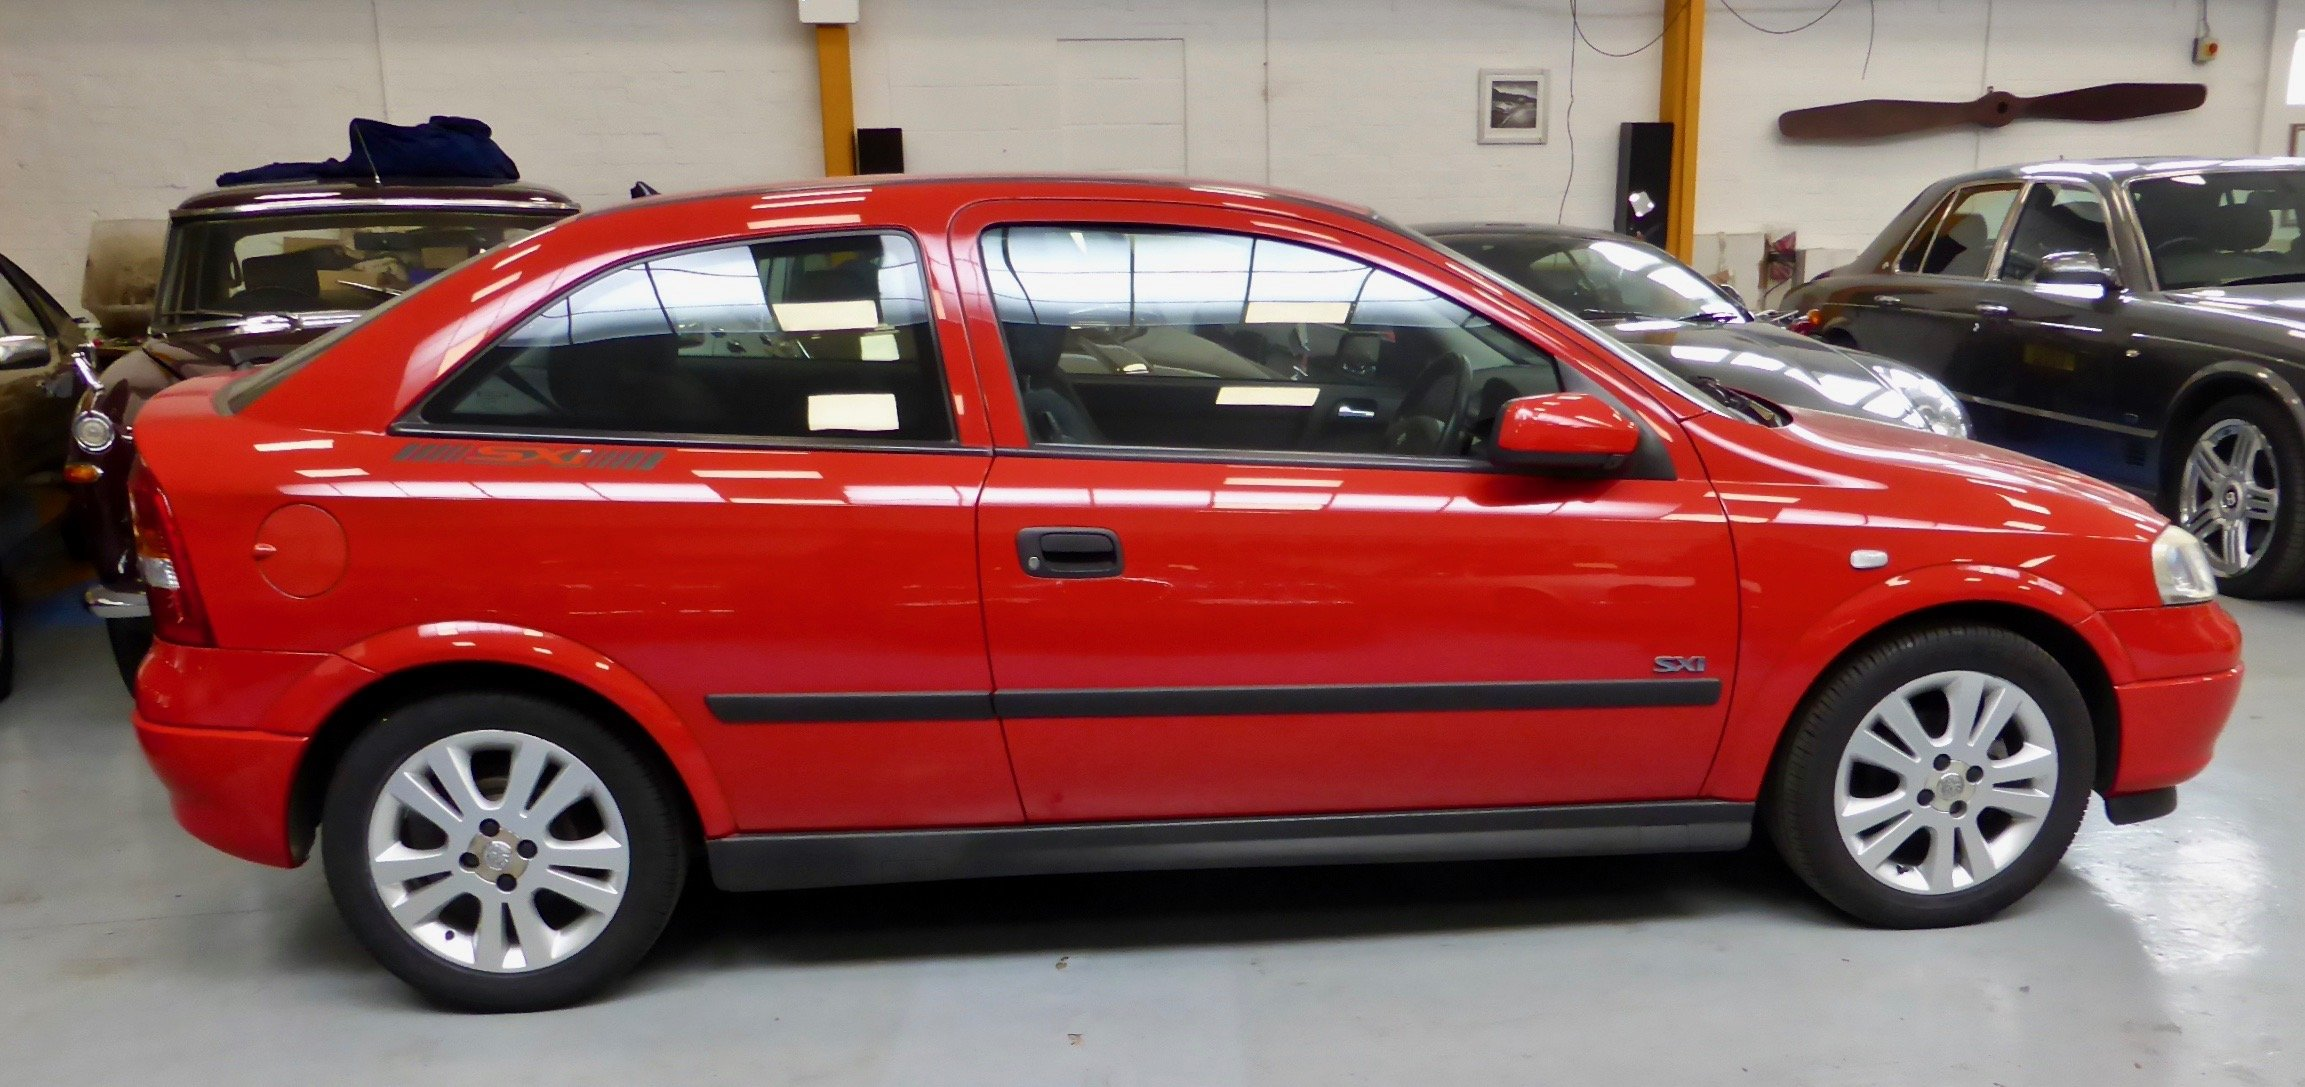 2002 Vauxhall Astra SXI Hatchback  For Sale (picture 3 of 6)